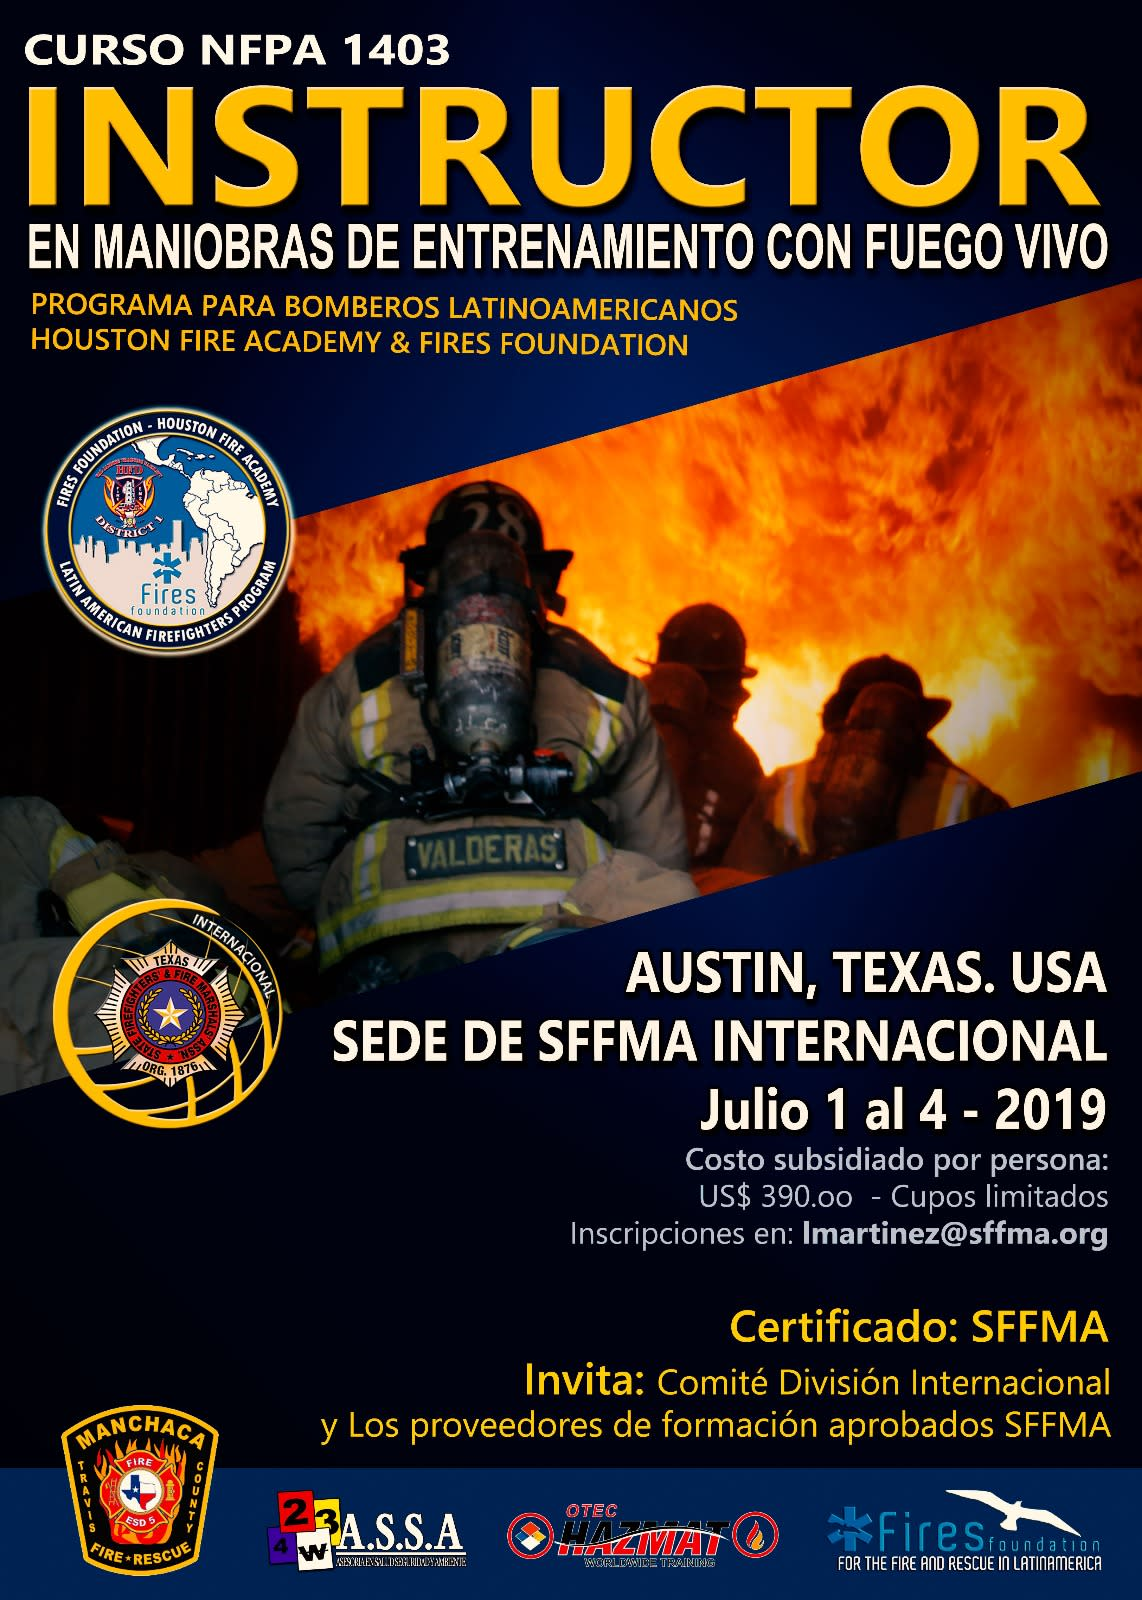 State Firefighters' & Fire Marshals' Association of Texas | SFFMA